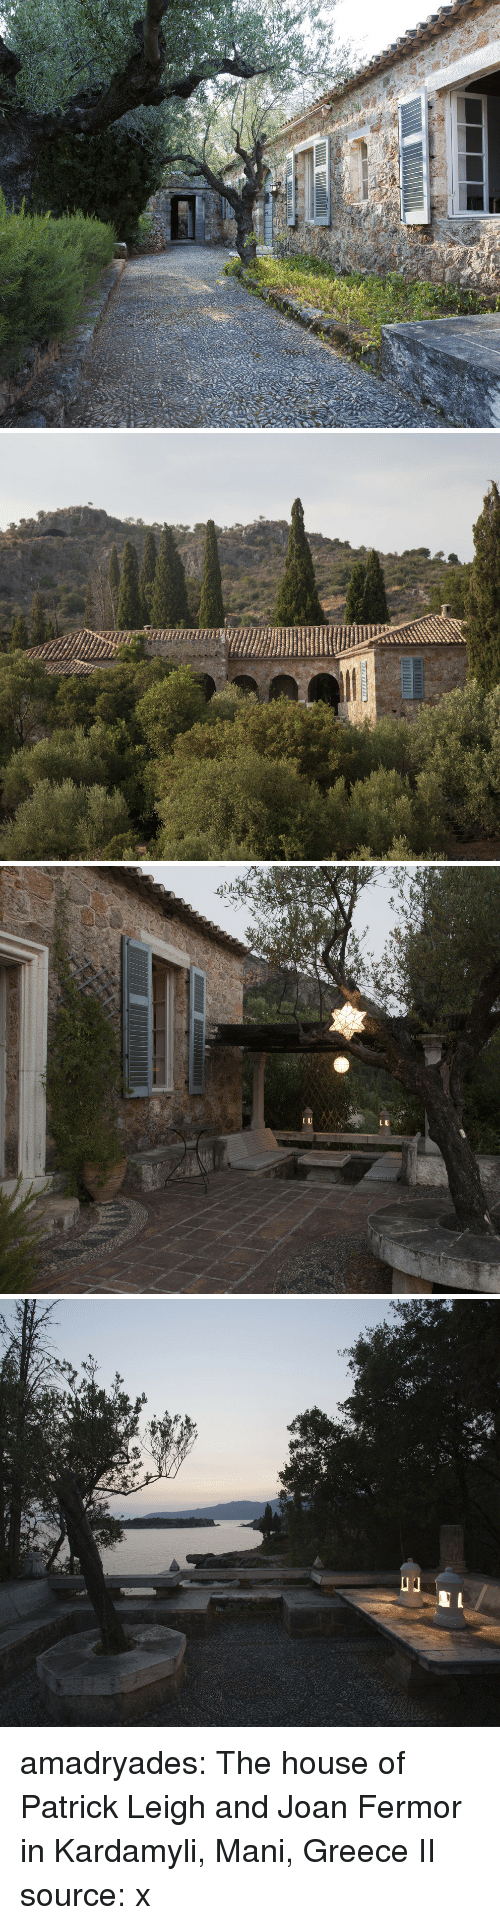 Tumblr, Blog, and Greece: amadryades:  The house of Patrick Leigh and Joan Fermor in Kardamyli, Mani, Greece II source: x